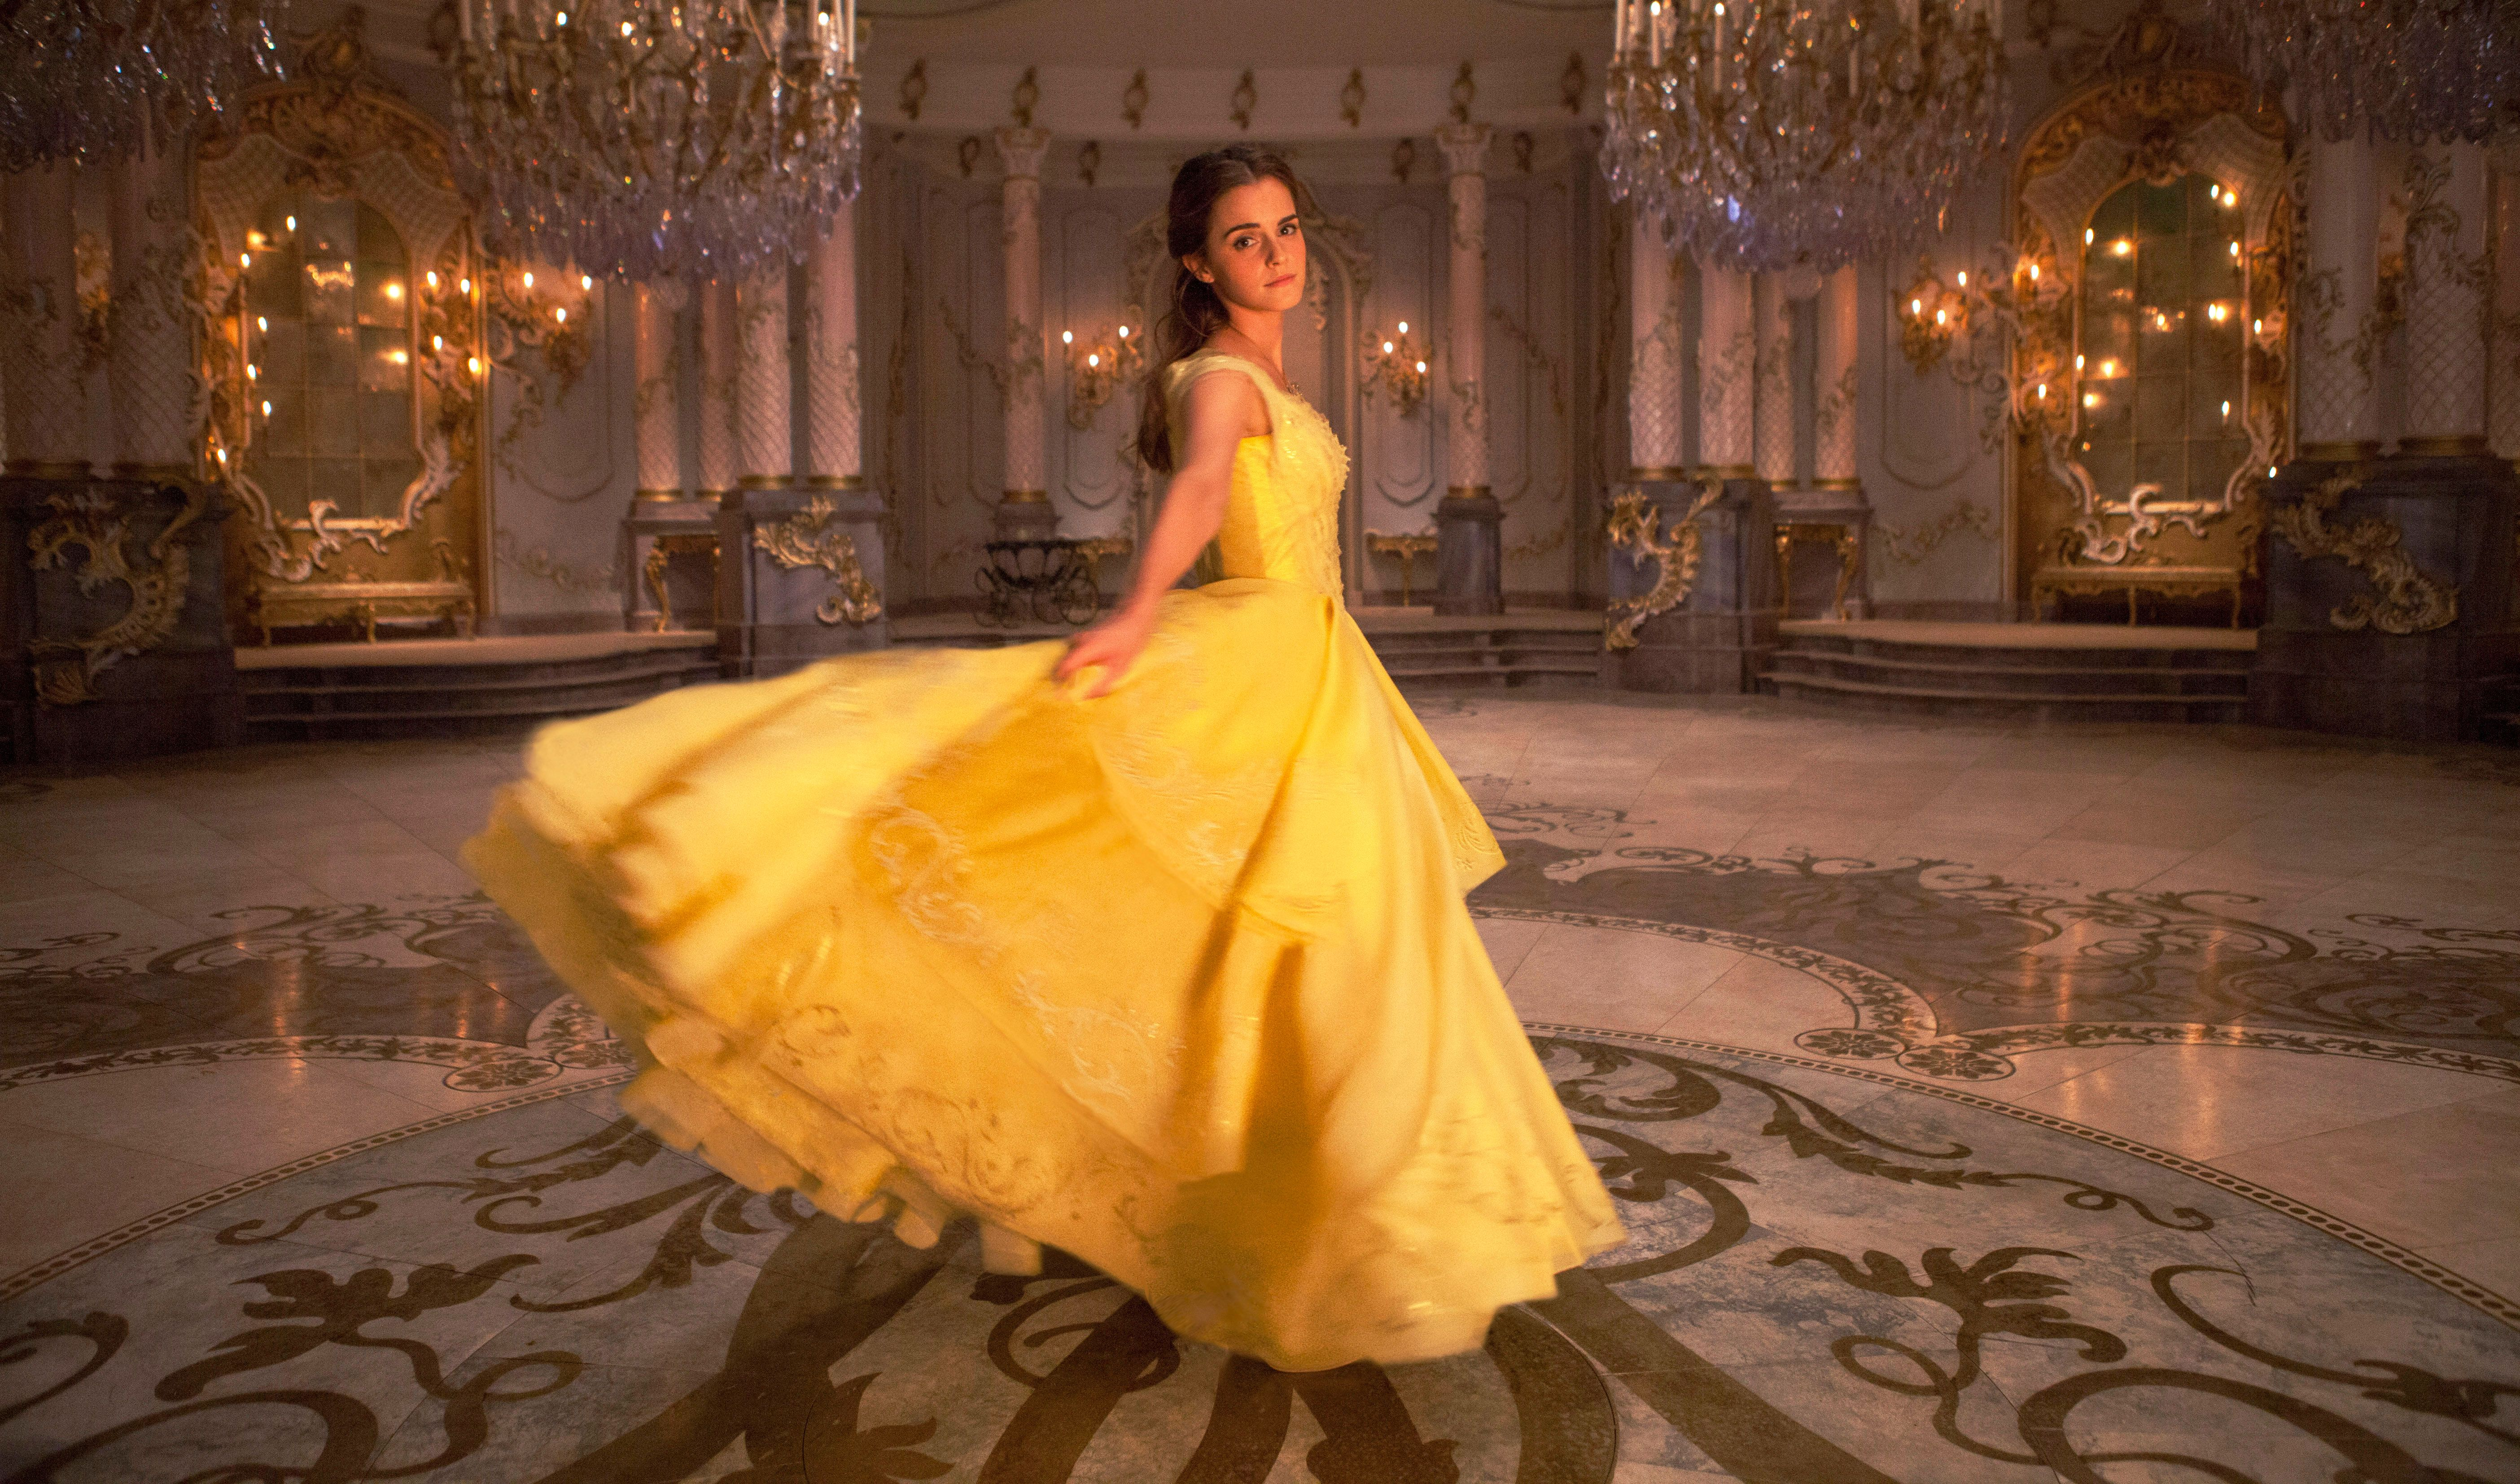 Beauty And The Beast 2017 Cast Trailer Release Date And Everything You Need To Know